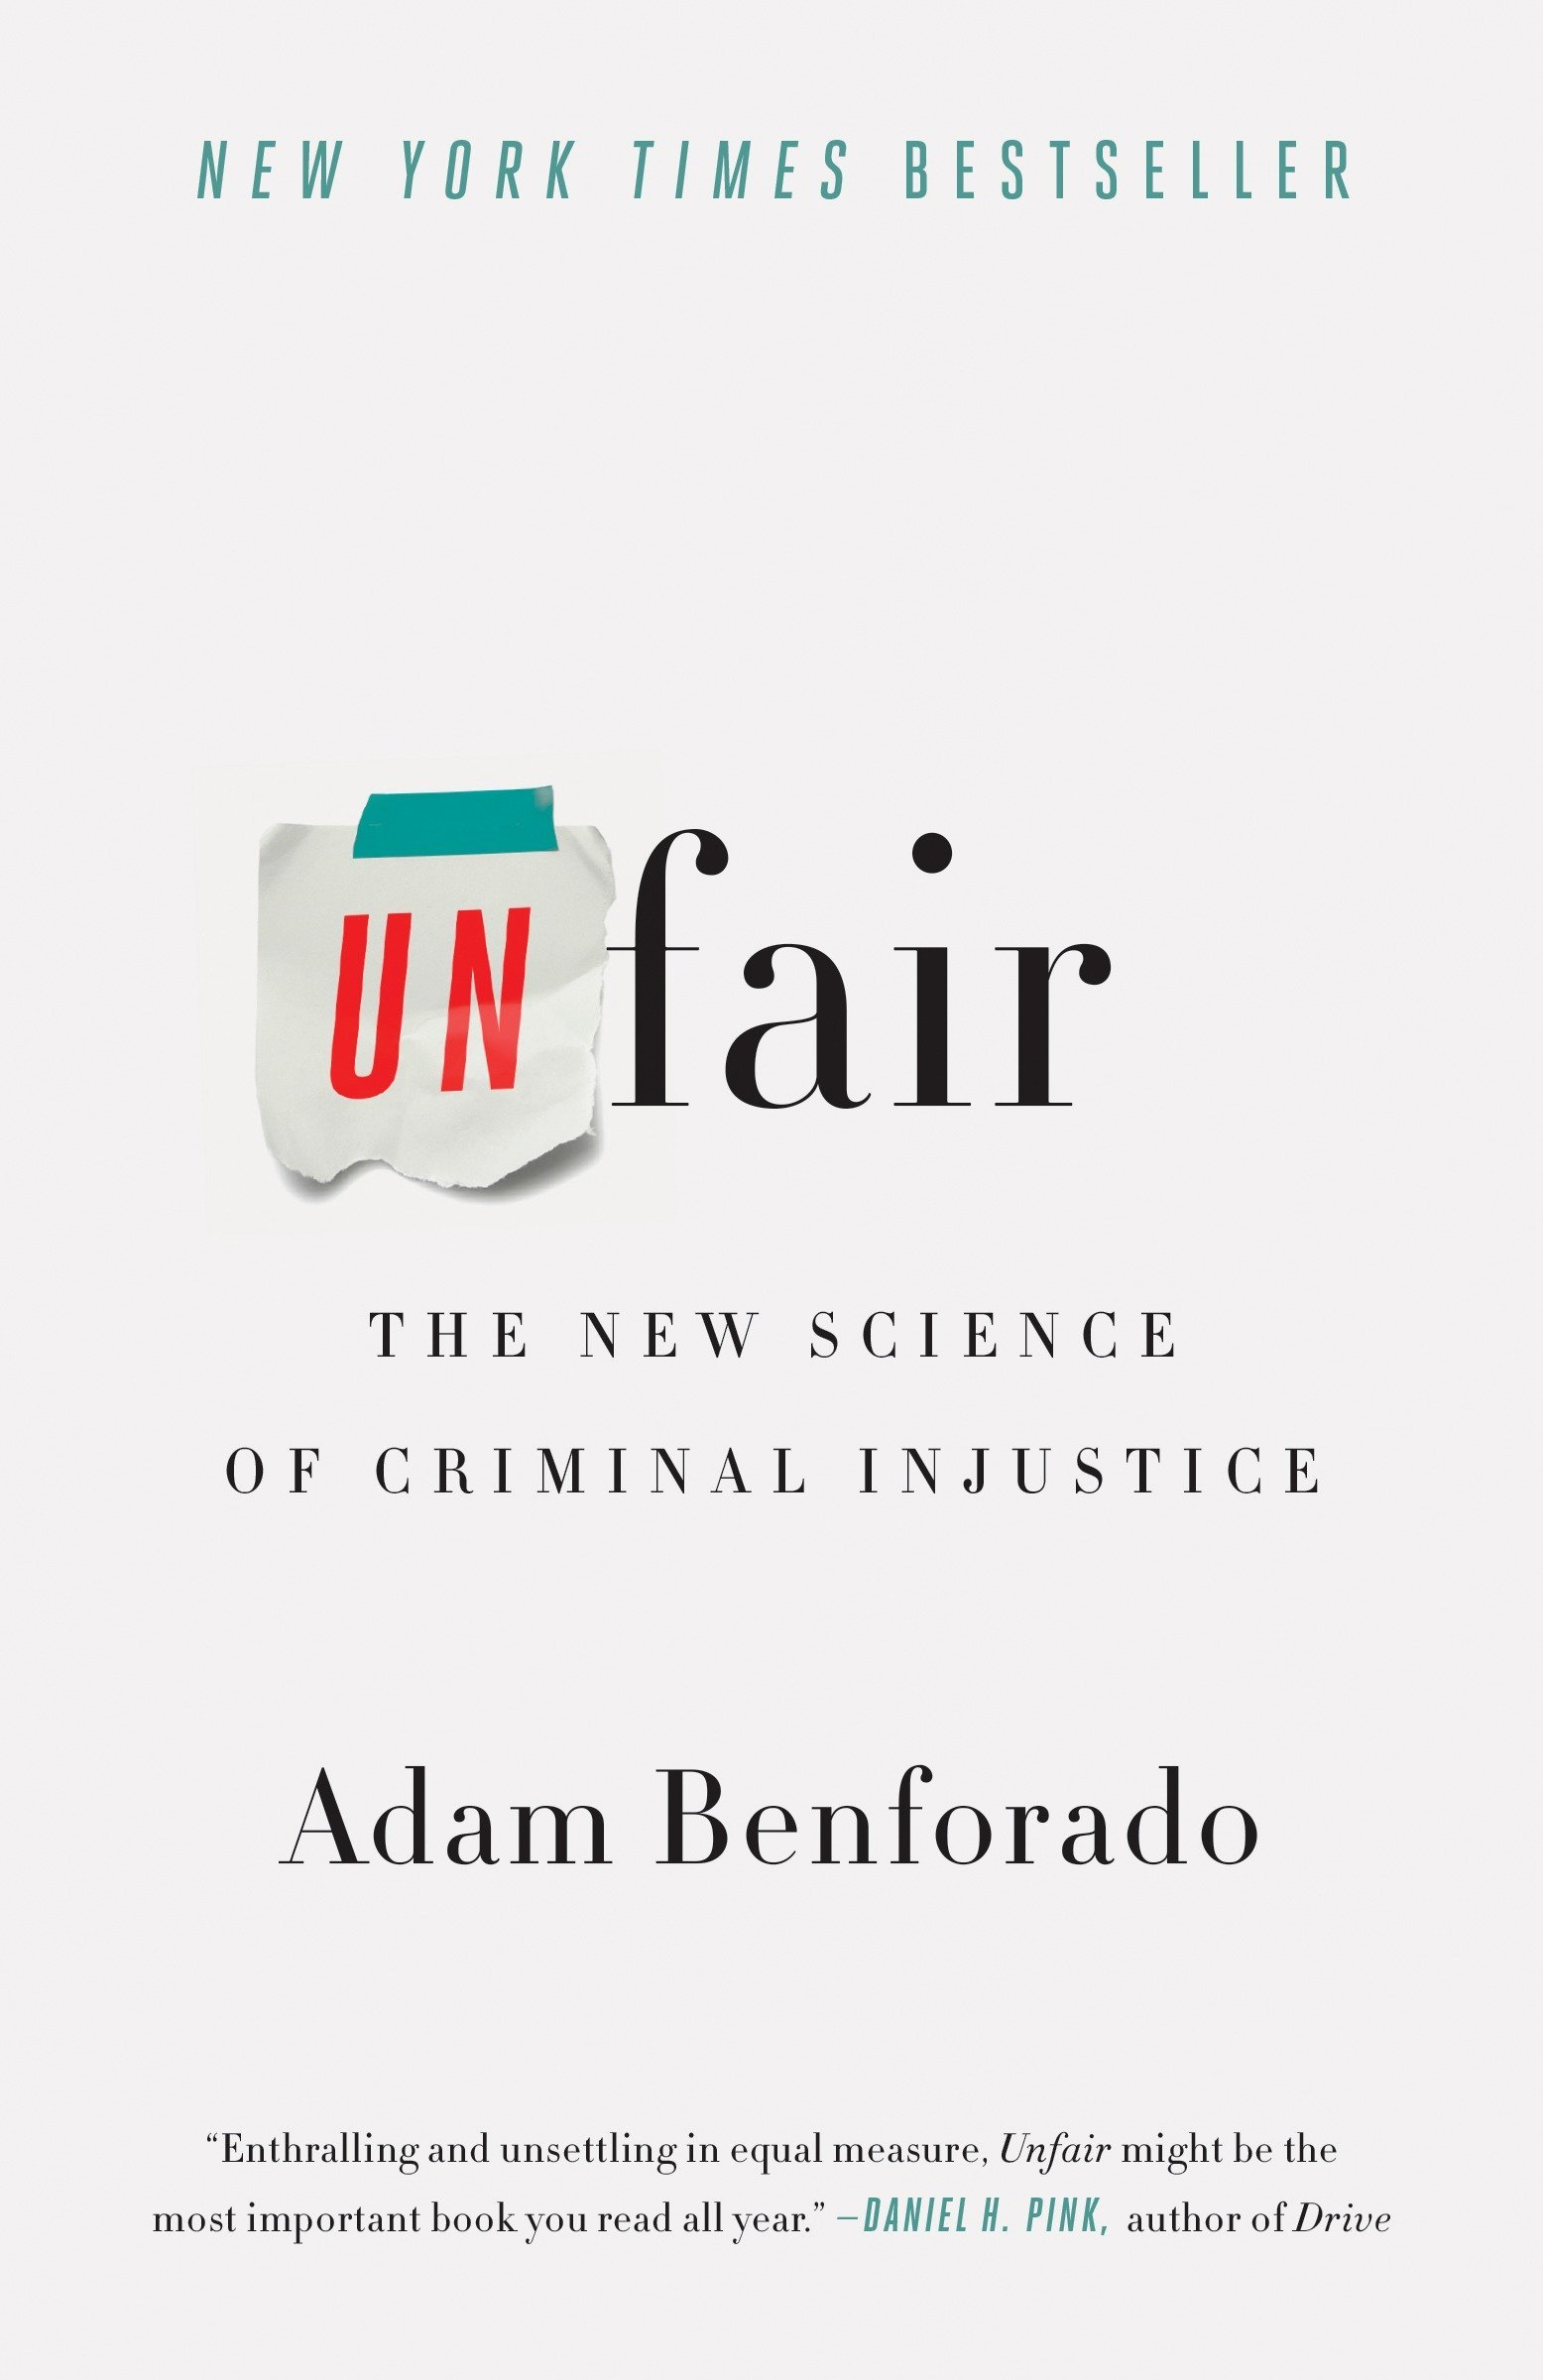 Unfair: The New Science of Criminal Injustice: Adam